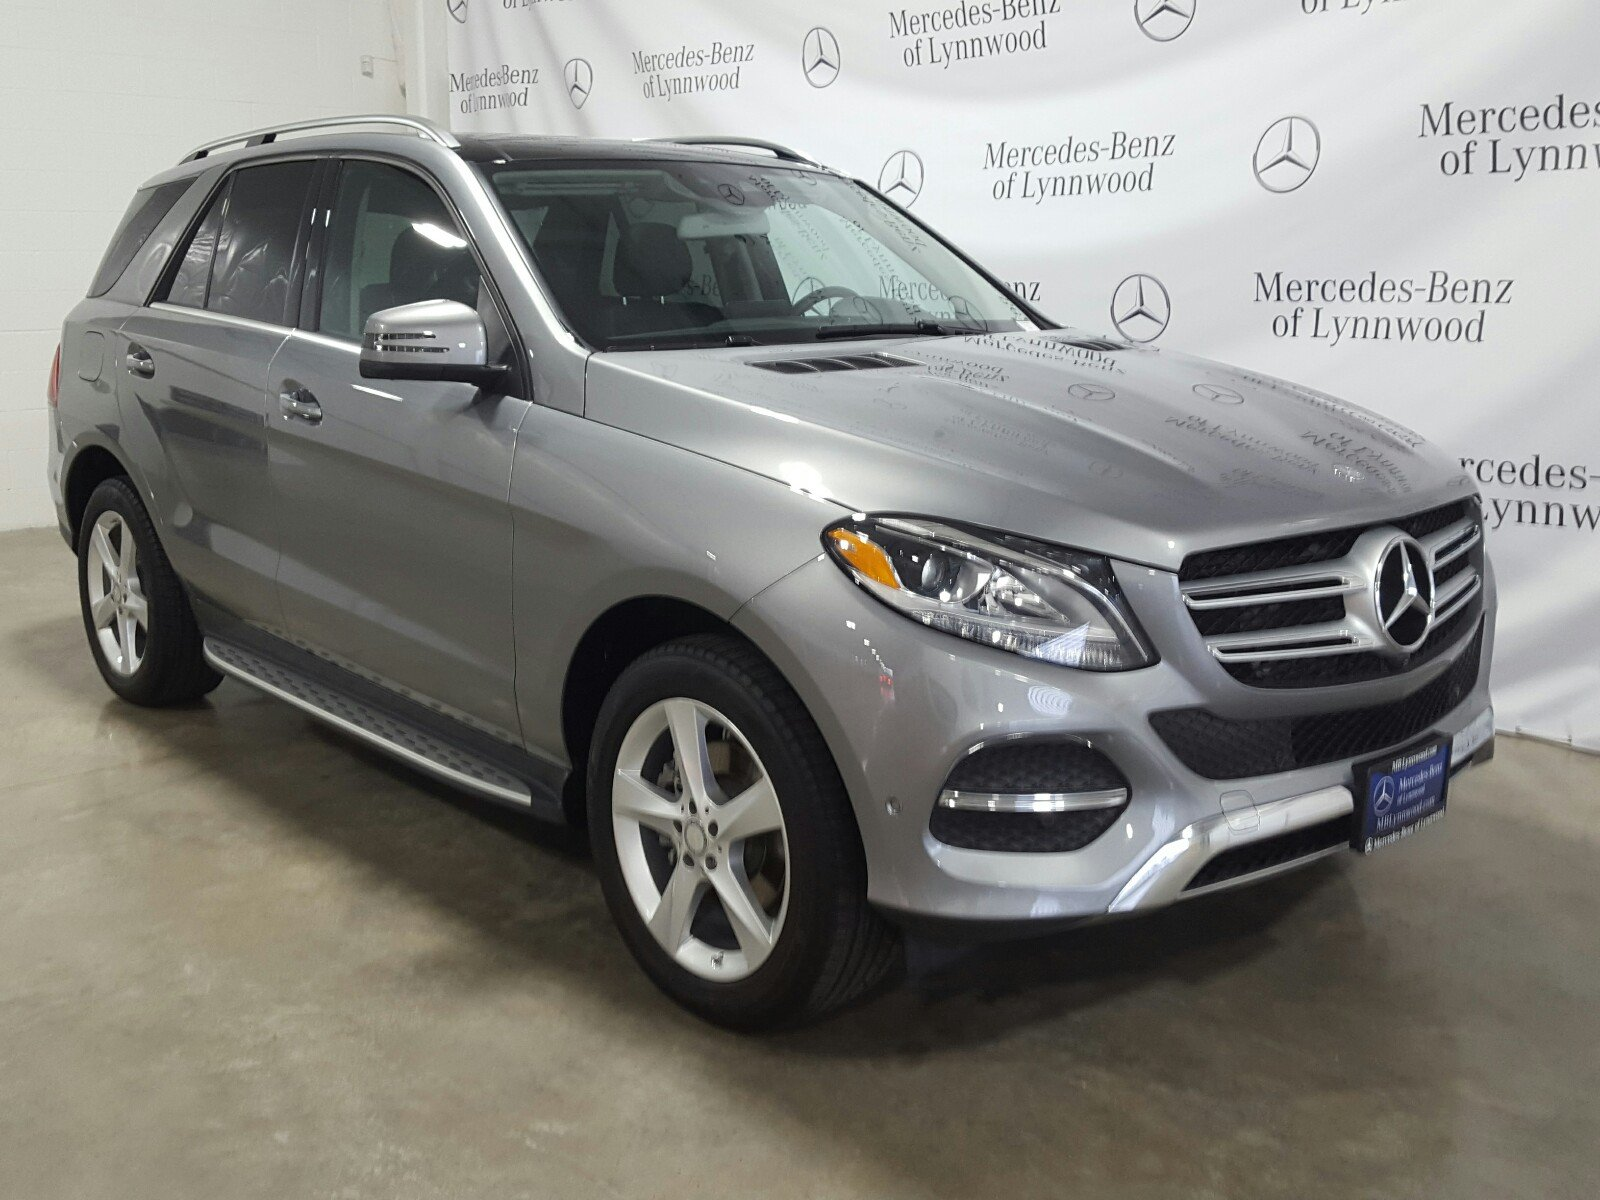 Certified Pre Owned 2016 Mercedes Benz GLE GLE 300d 4MATIC SUV in